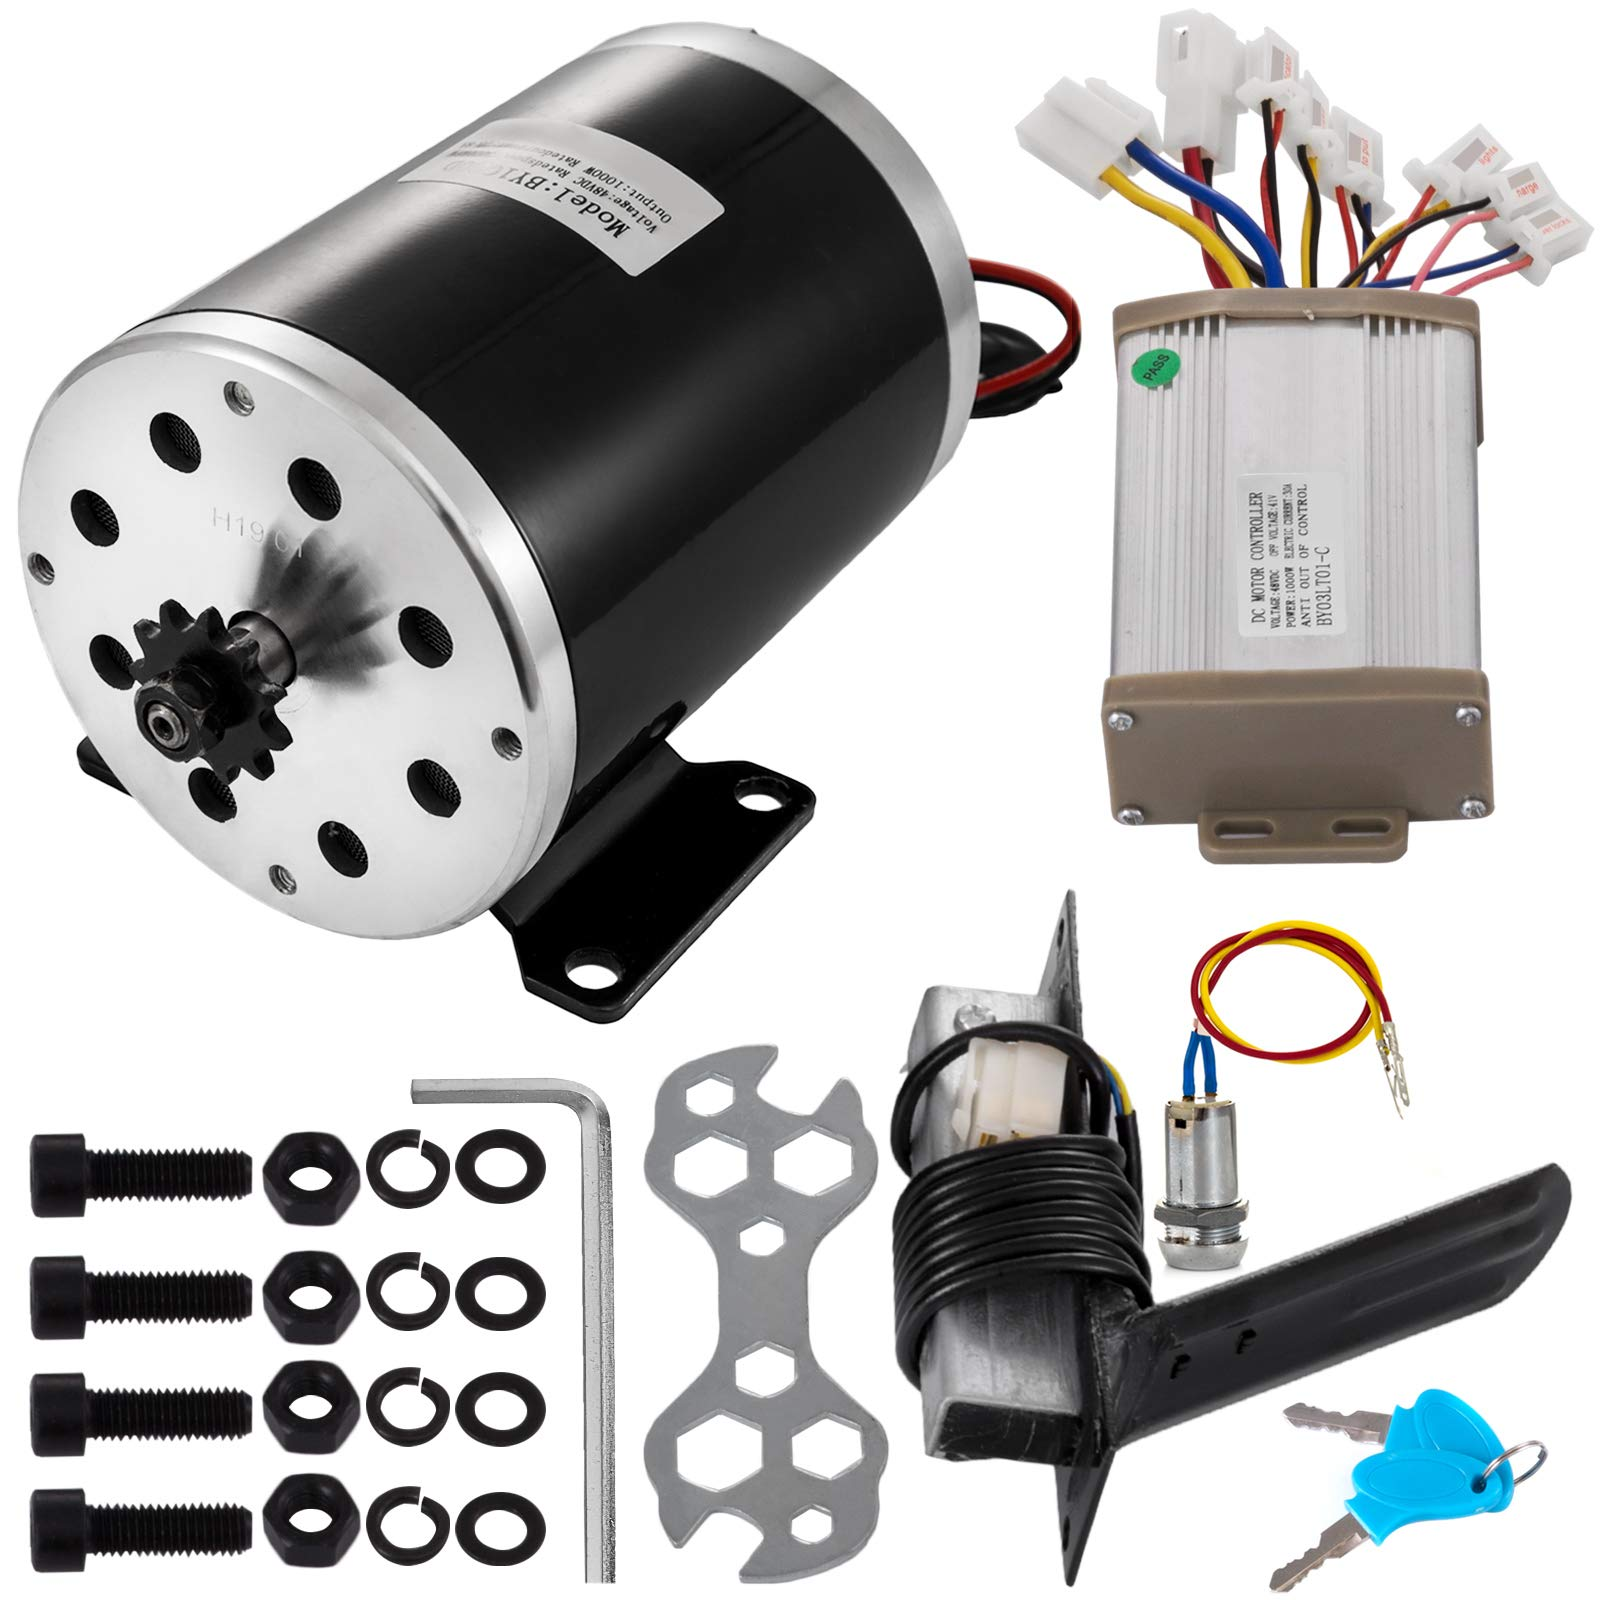 Mophorn Electric Permanent Magnet Motor 48V DC 1000 Watt with Controller & Pedal & Ignition Key 11Tooth #25Chain Sprocket and Mounting Bracket for Go Karts Scooters & E-Bike